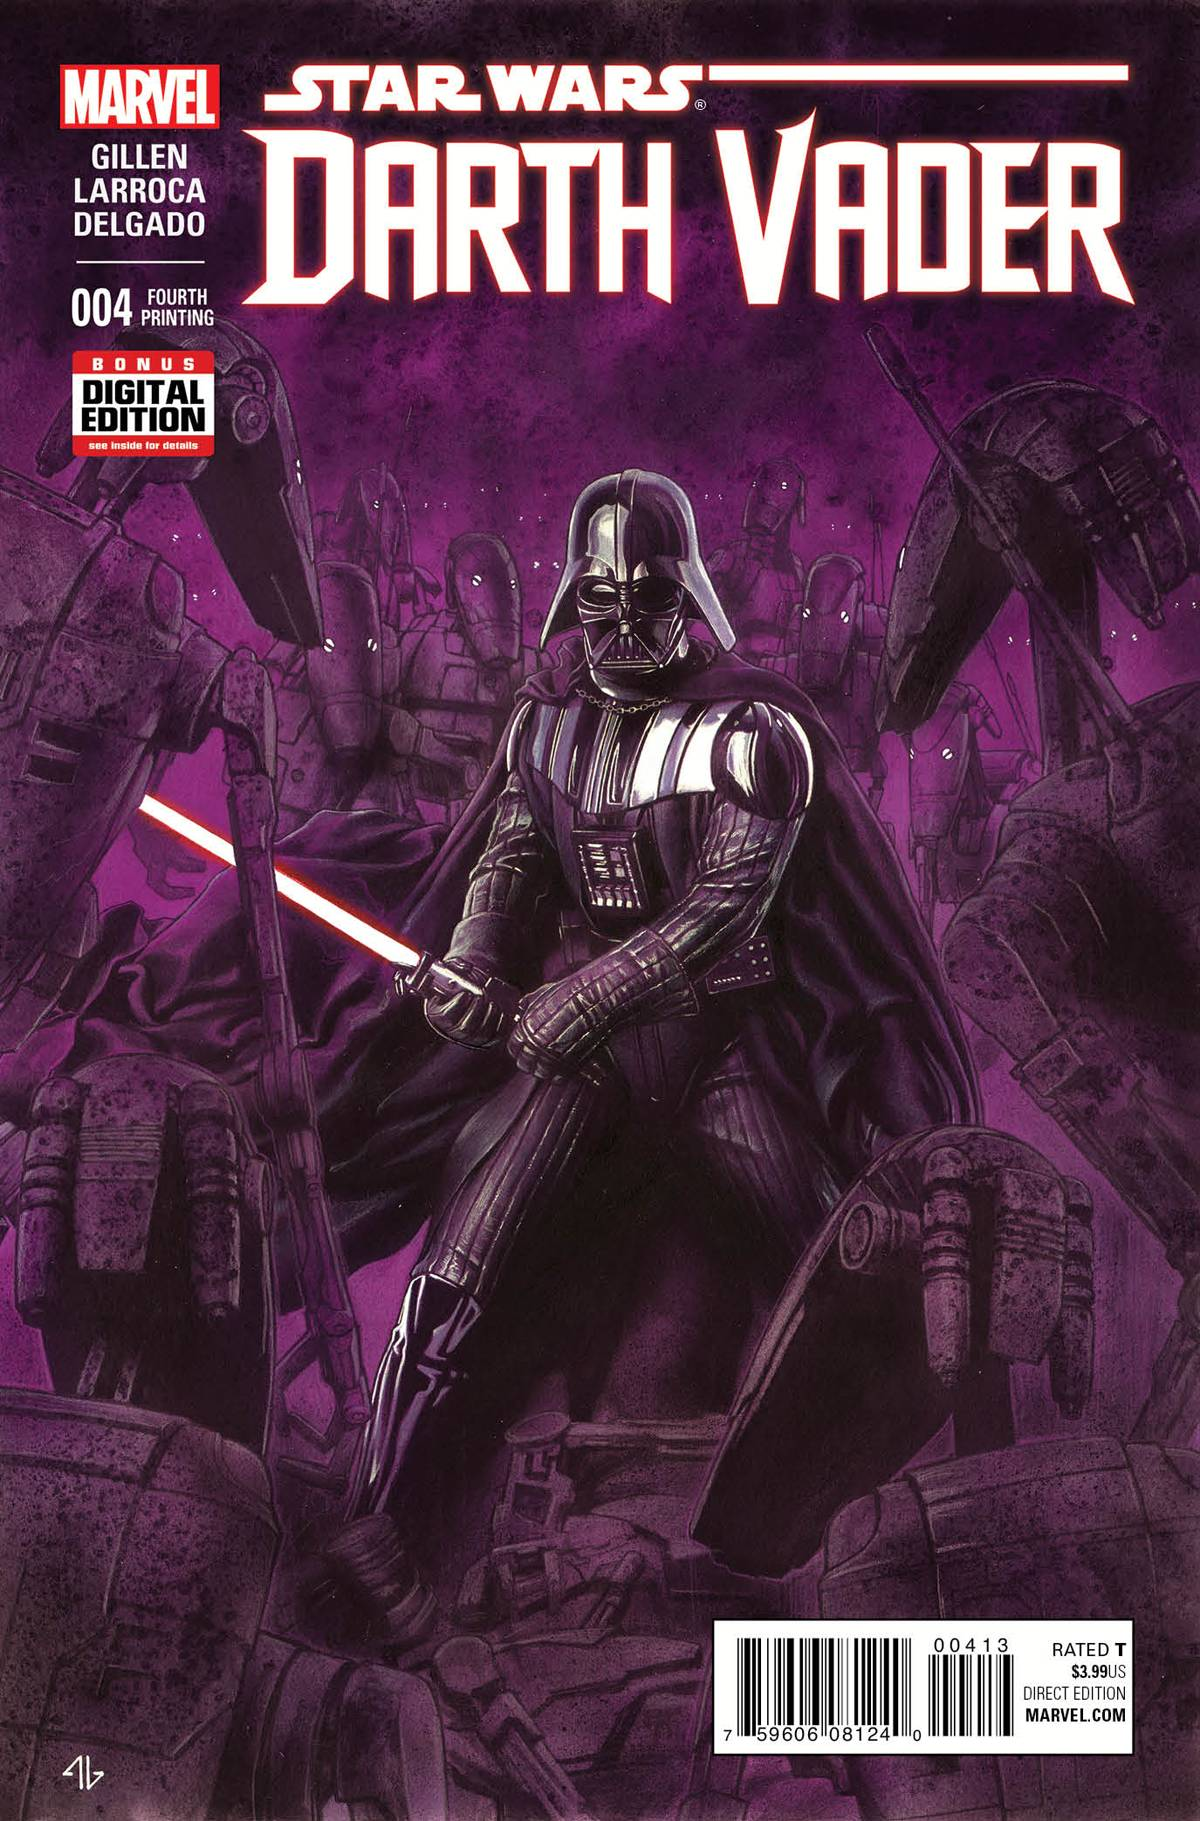 Darth Vader #4 (4th Printing) (11.11.2015)